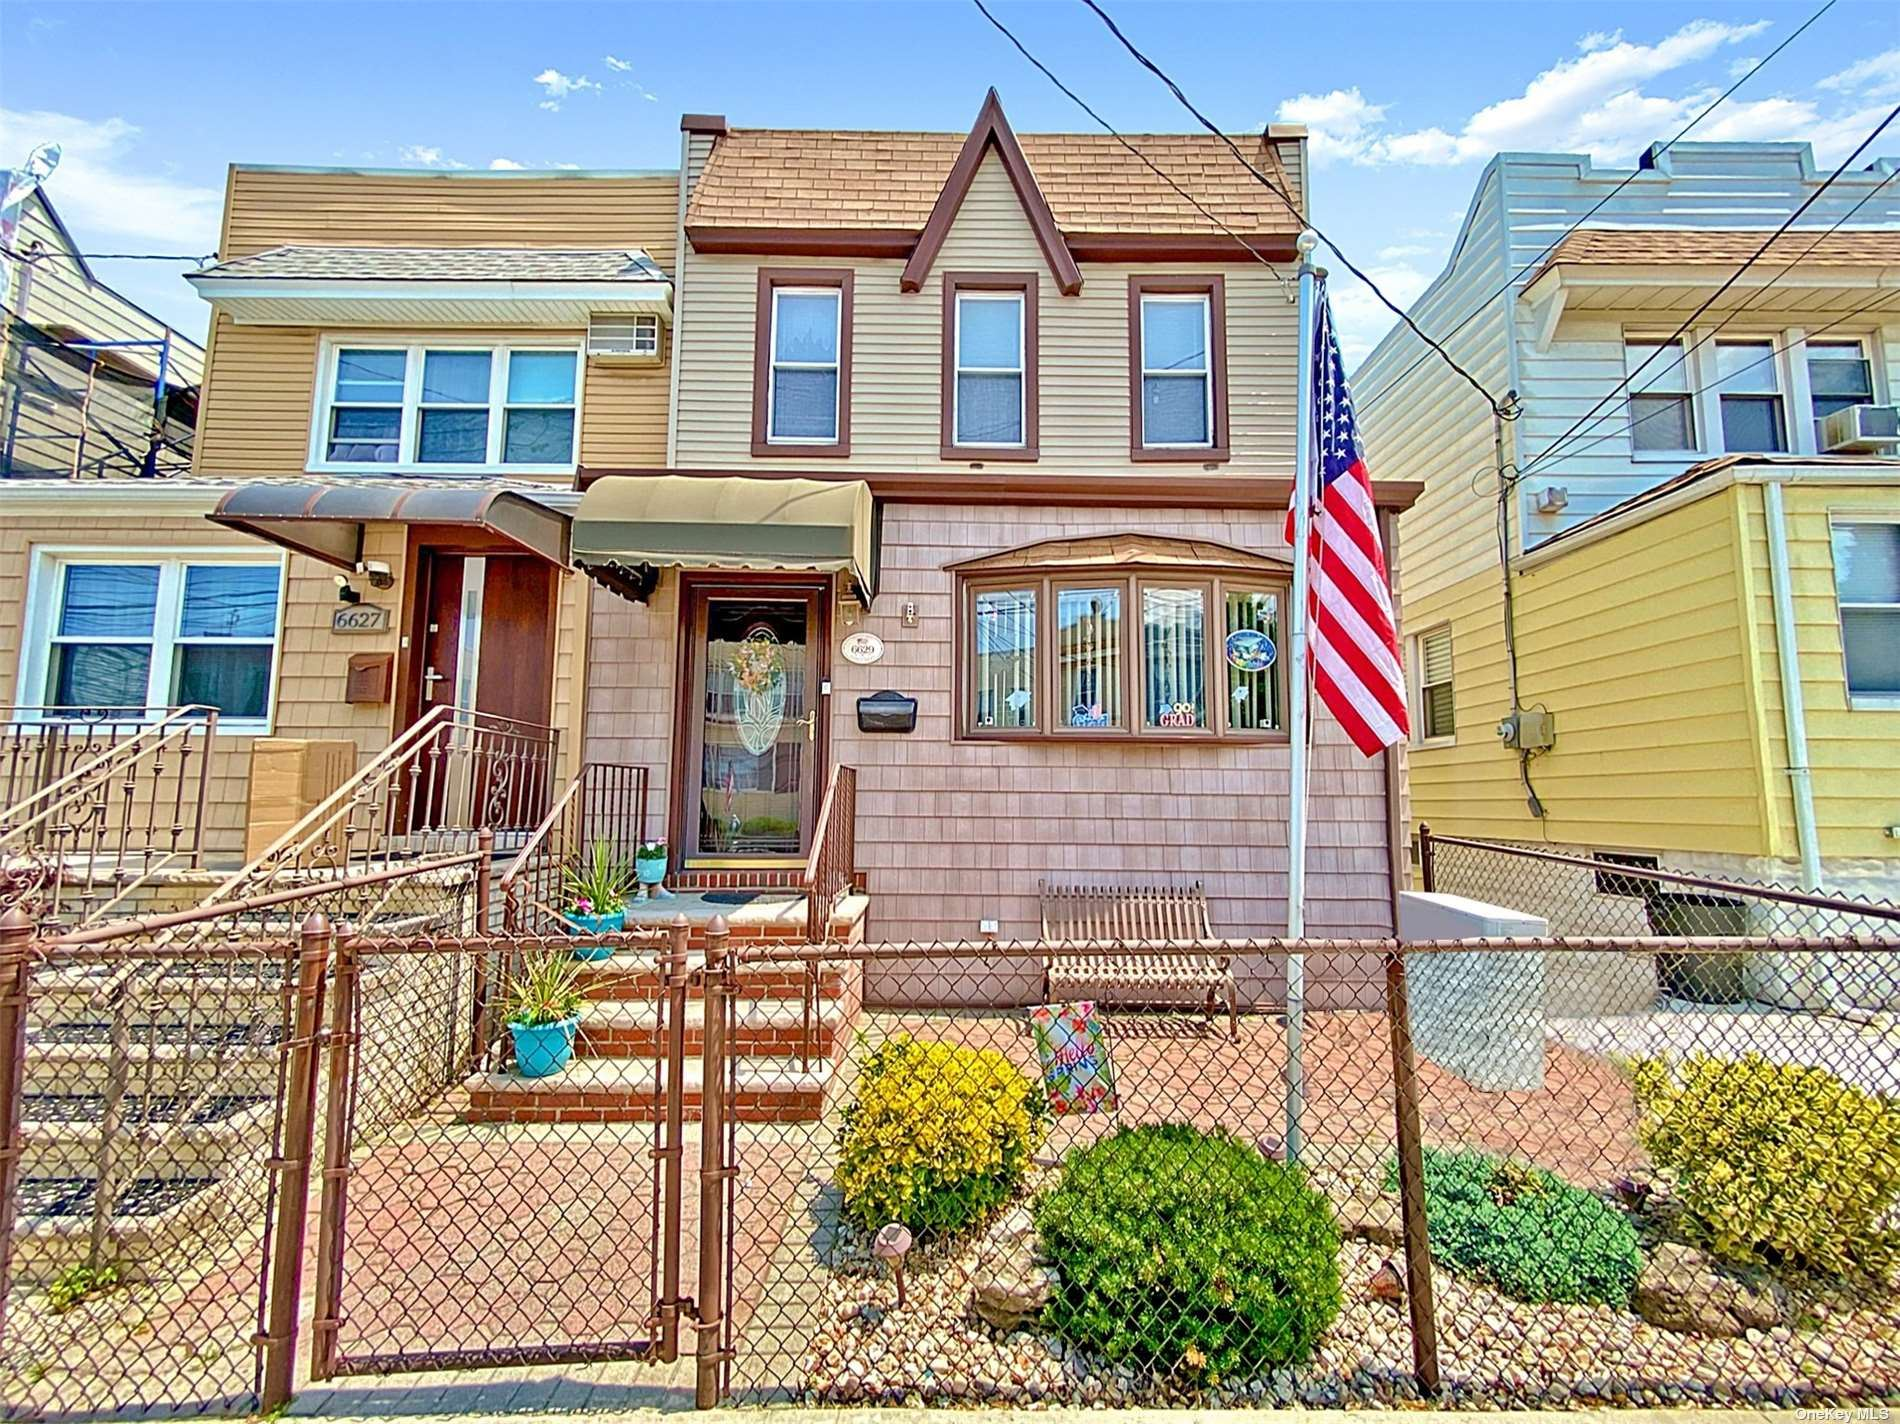 66-29 75th Street, Middle Village, NY 11379 - MLS#: 3349932